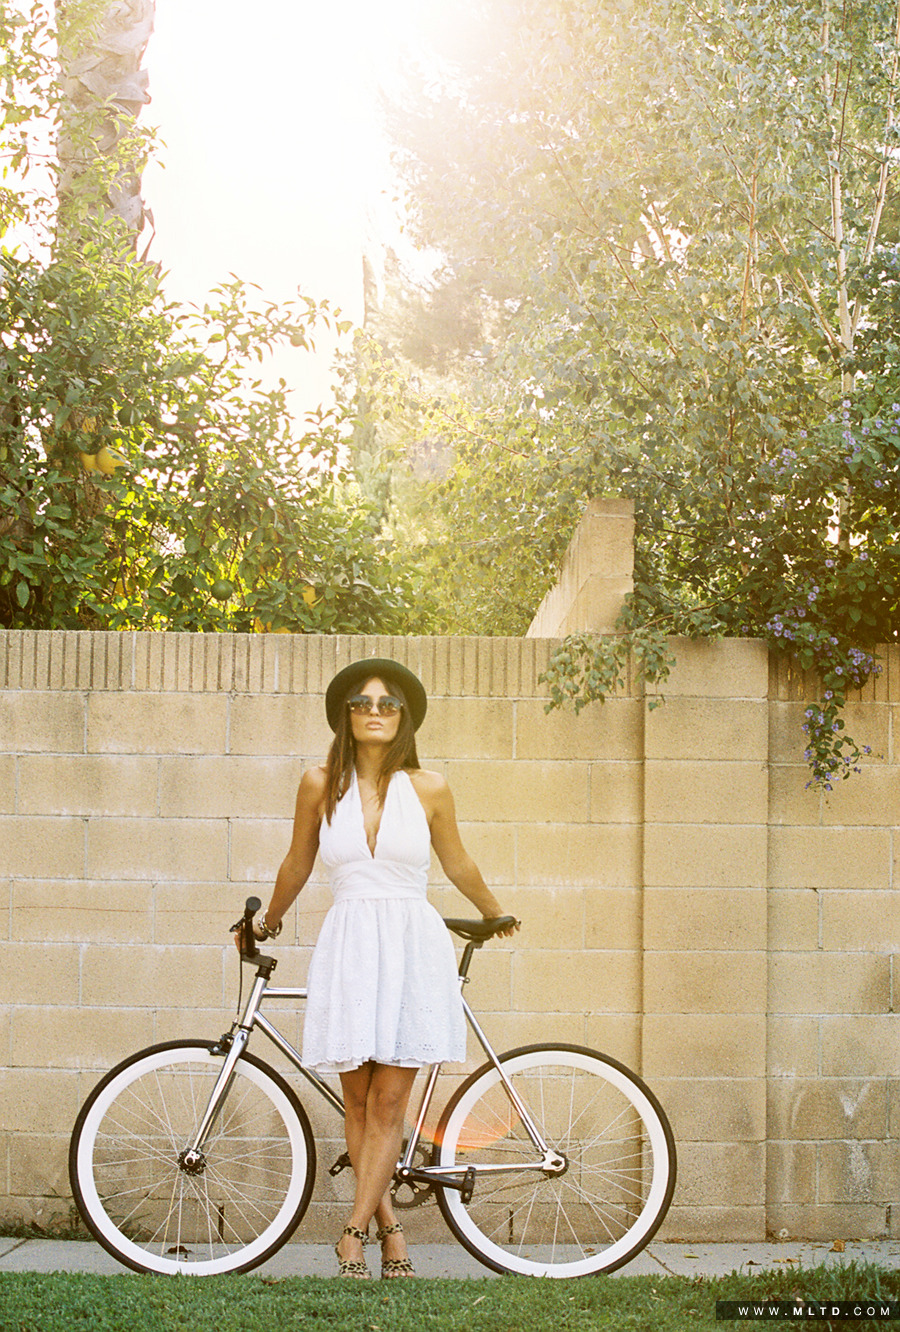 35MM OF SHAY MARIA IN BB DAKOTA (THANK YOU TO RETROSPEC FOR THE BIKE) Photo: Danny Steezy